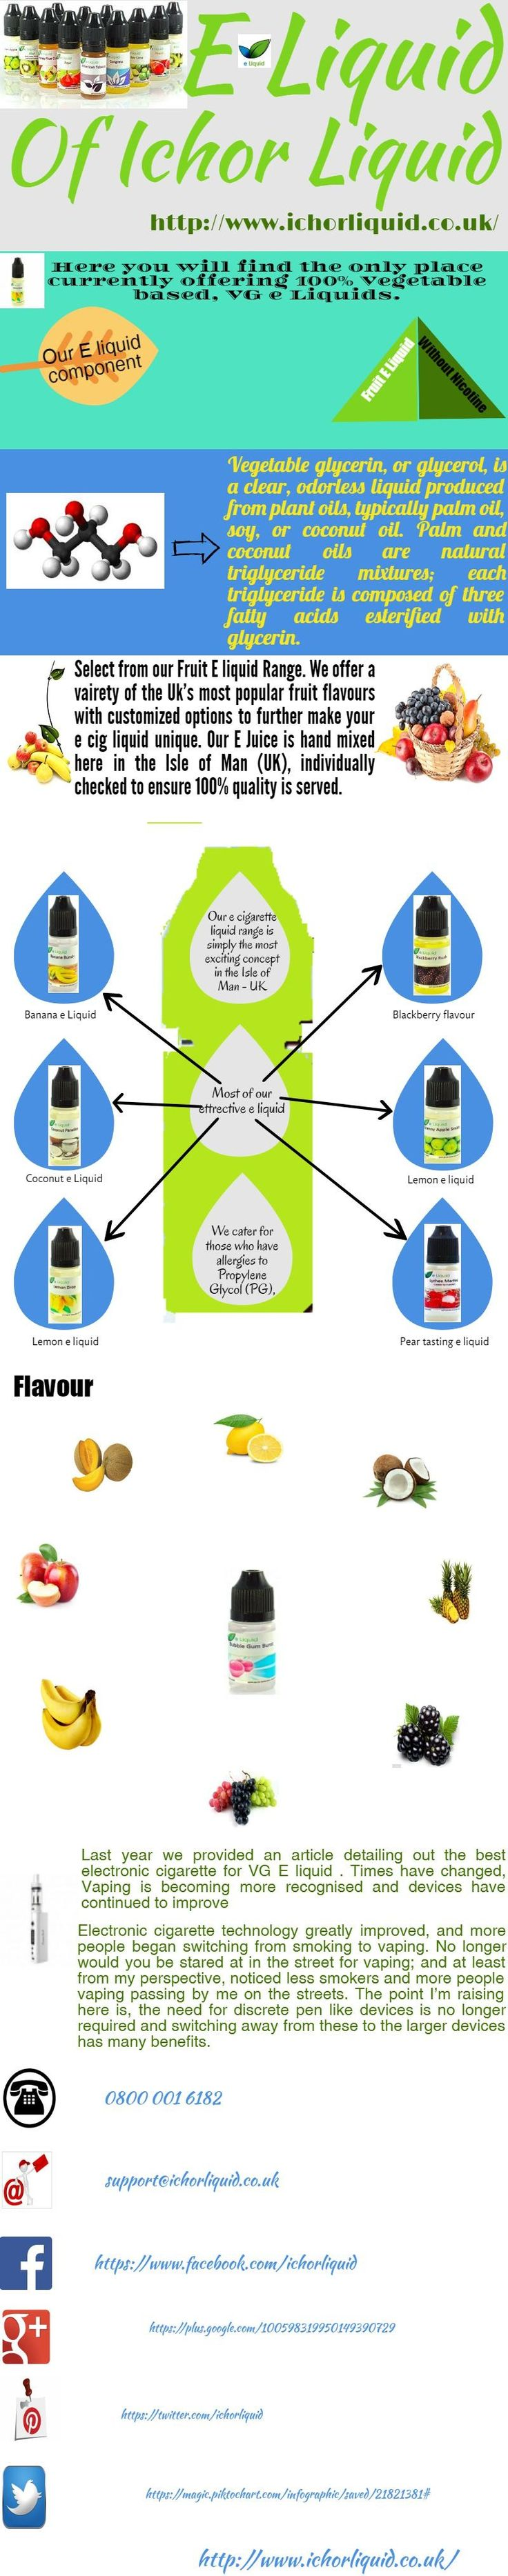 Best VG E Liquid In UK  Here you will find the only place currently offering 100% Vegetable based, VG e Liquids. We cater for those who have allergies to Propylene Glycol (PG), which is commonly found in the more commercial e Liquids available on the market.